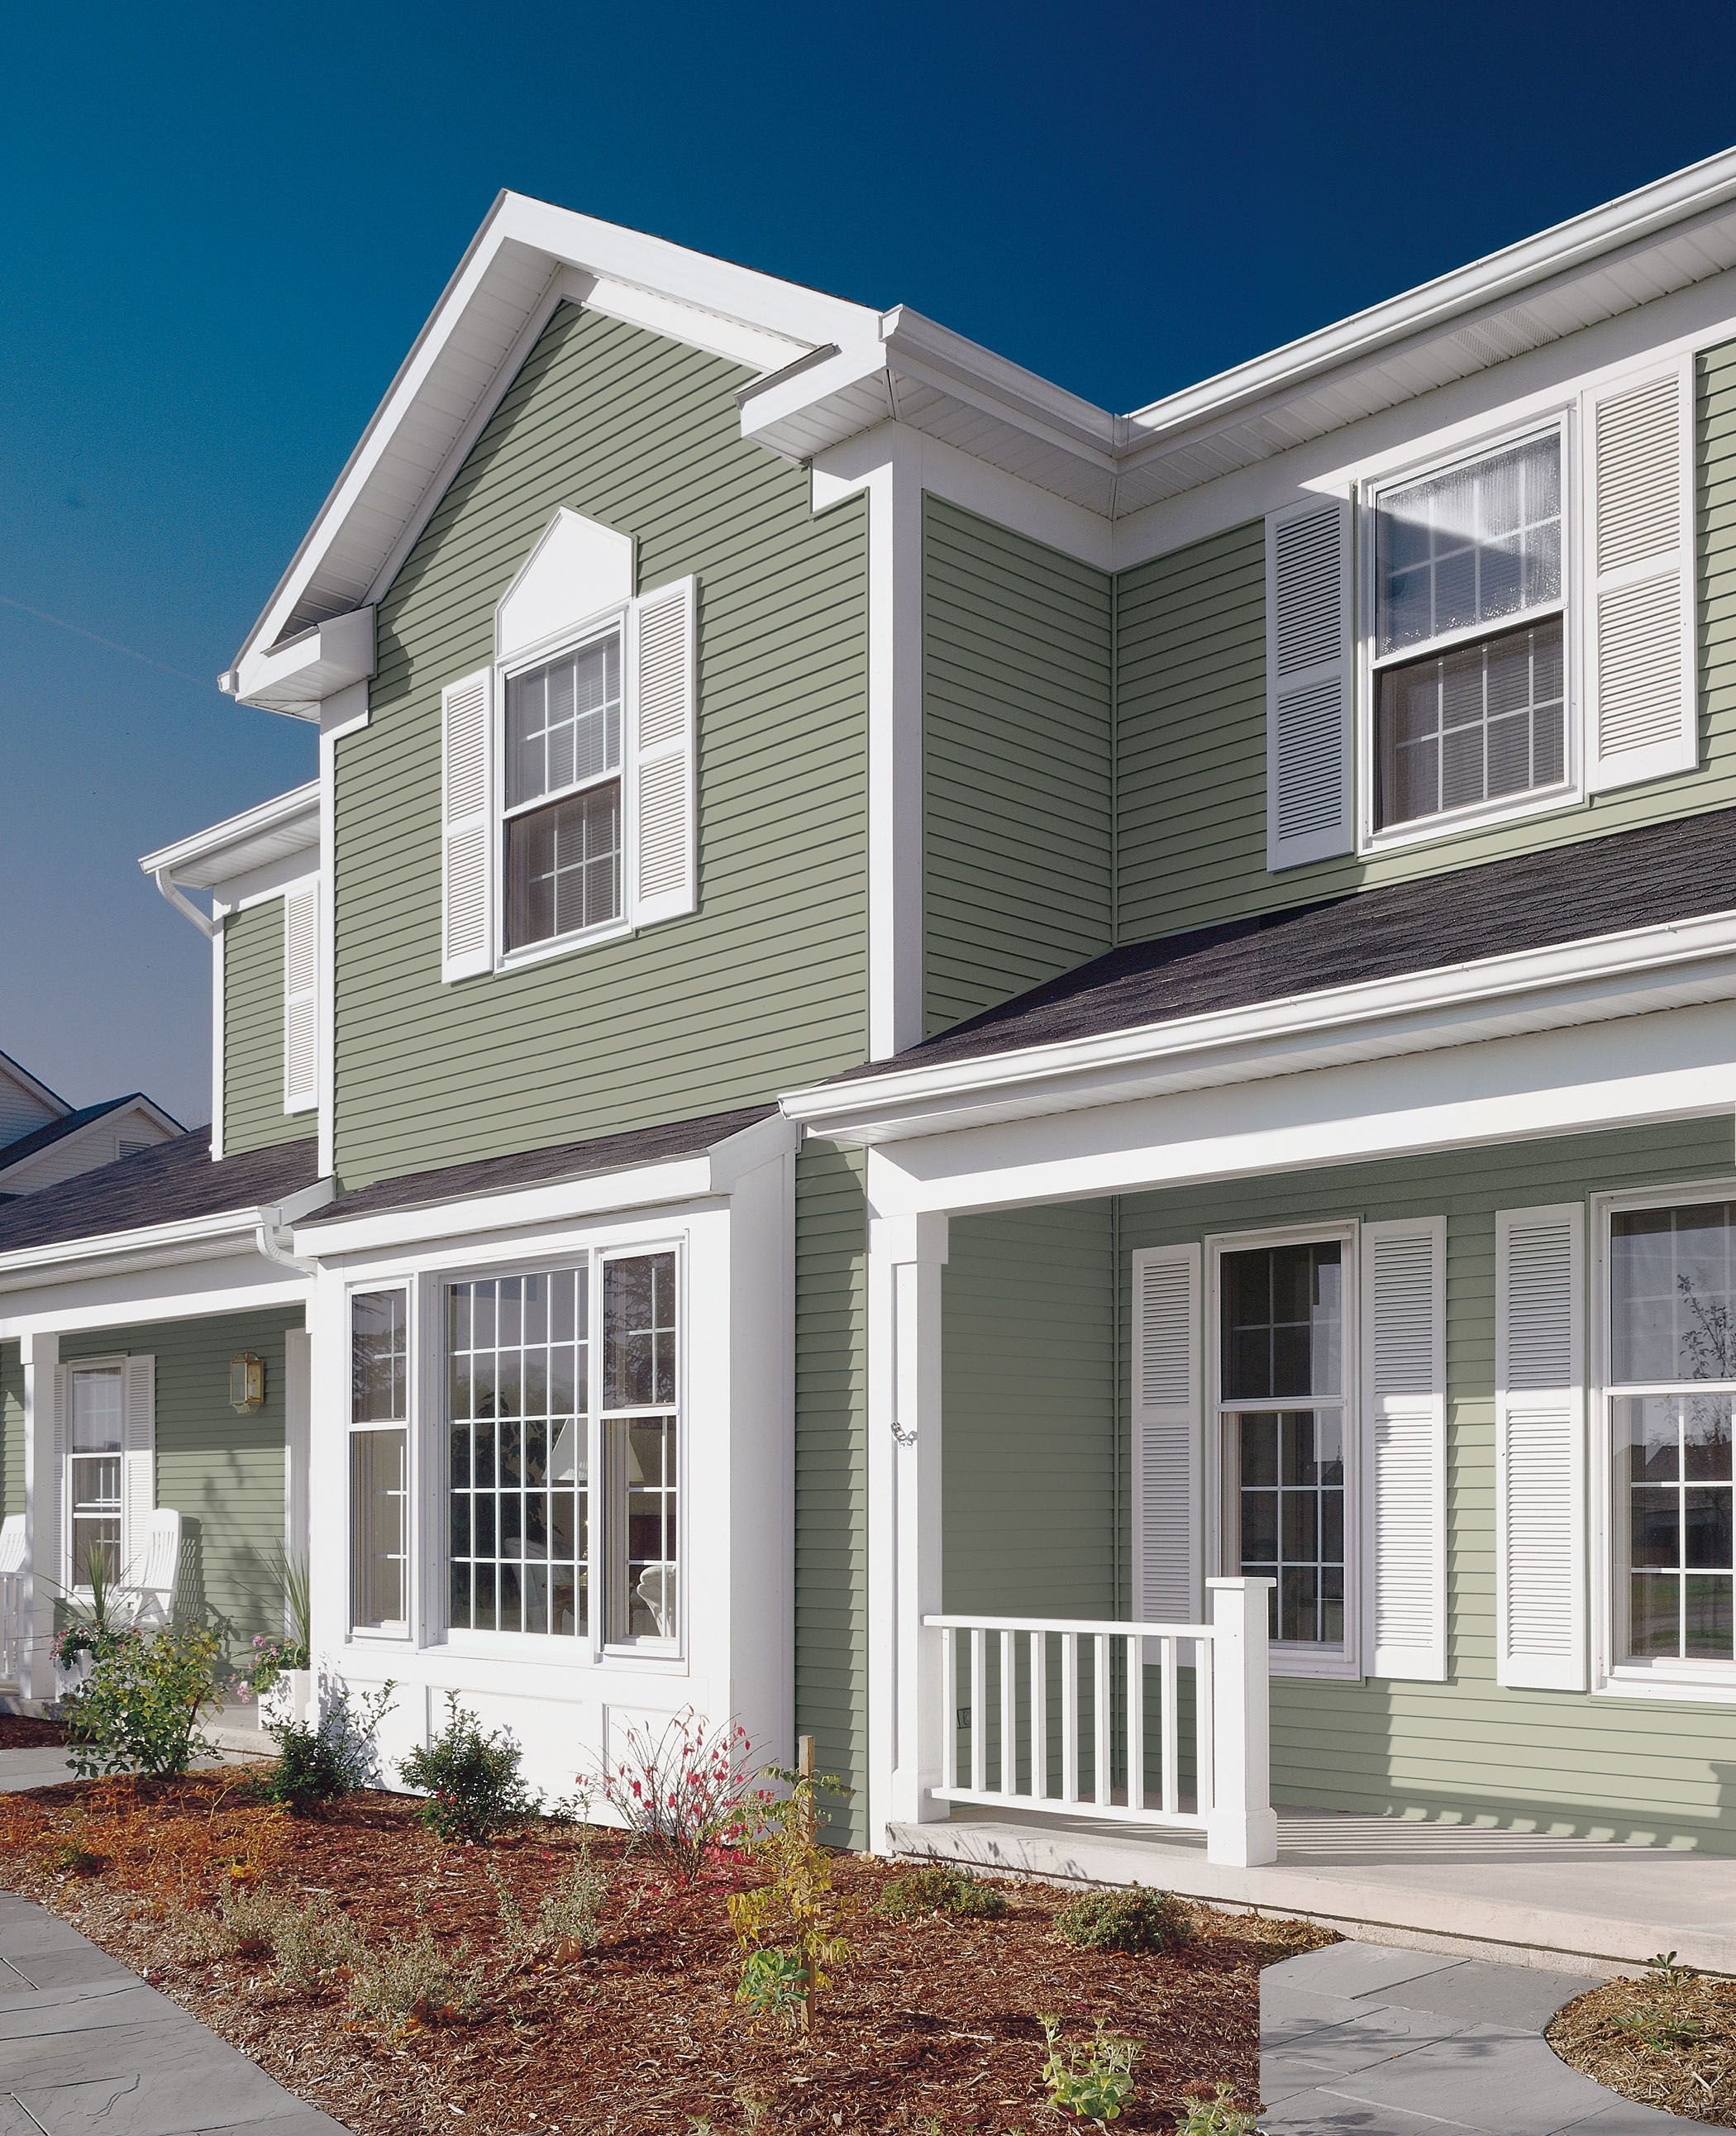 Window World Vinyl Siding Window World Of Northern California Is Locally Owned And Operated Selling Replaceme Vinyl Siding Siding Styles Vinyl Siding Styles